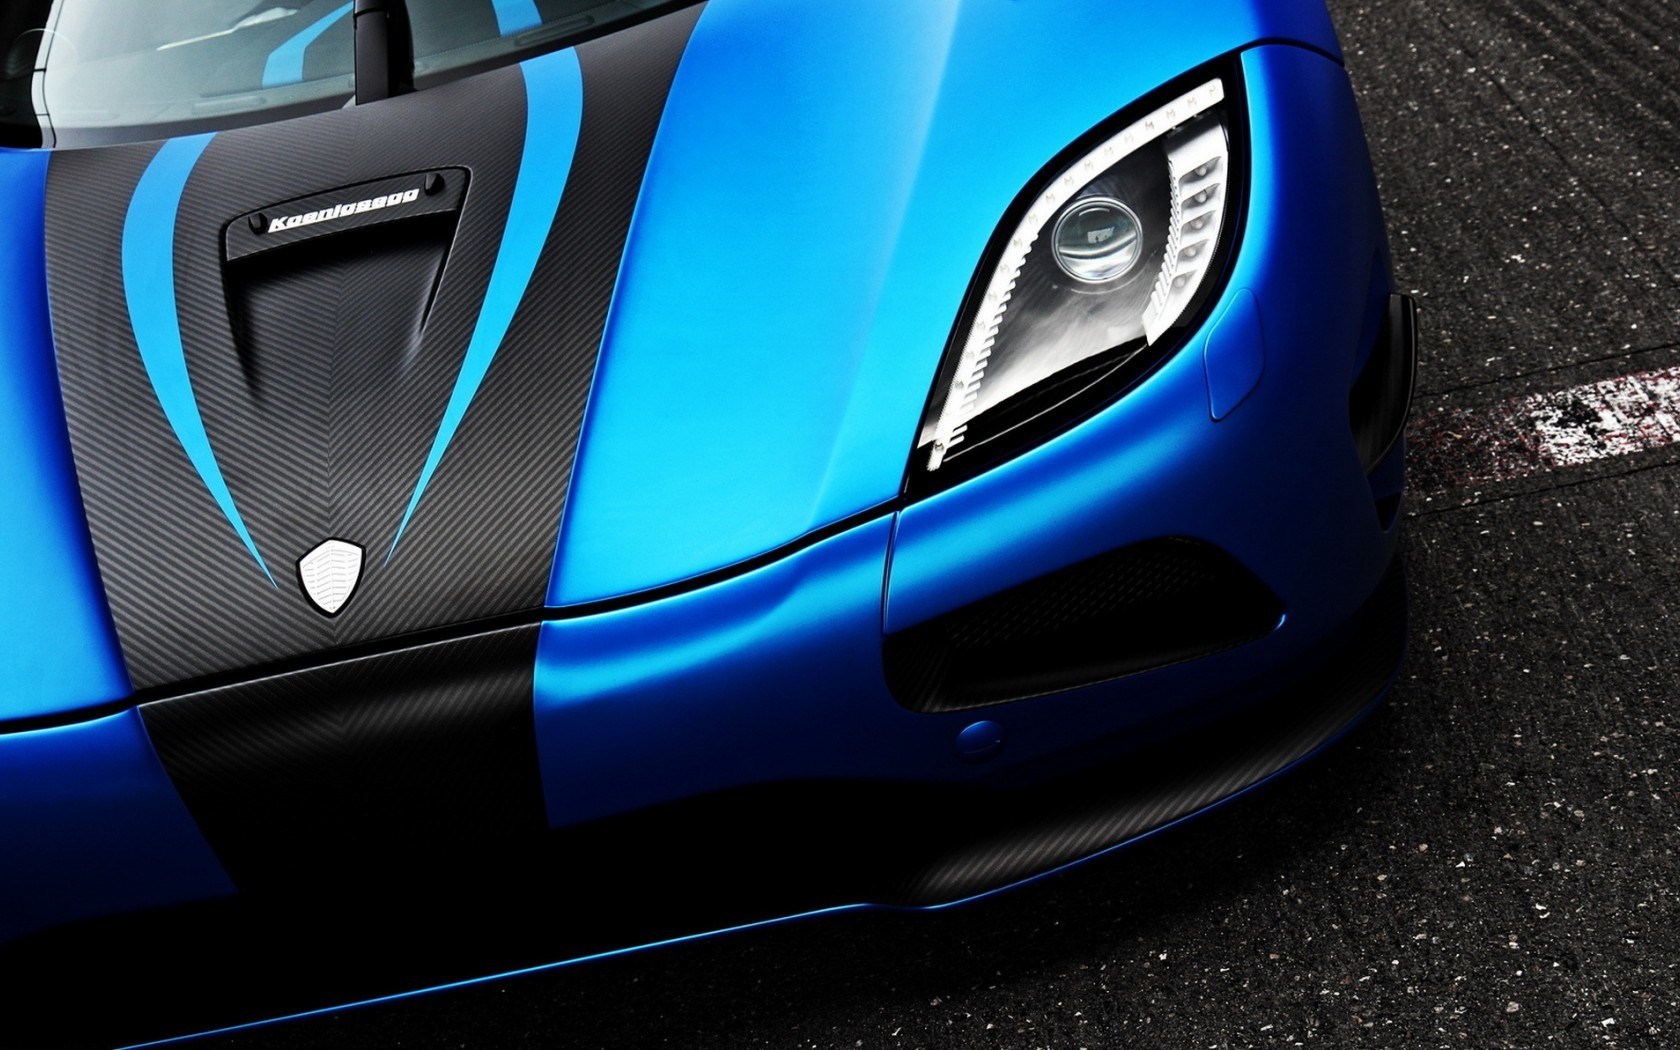 Koenigsegg Agera R Wallpapers HD Backgrounds Wallpaper Abyss 1680x1050